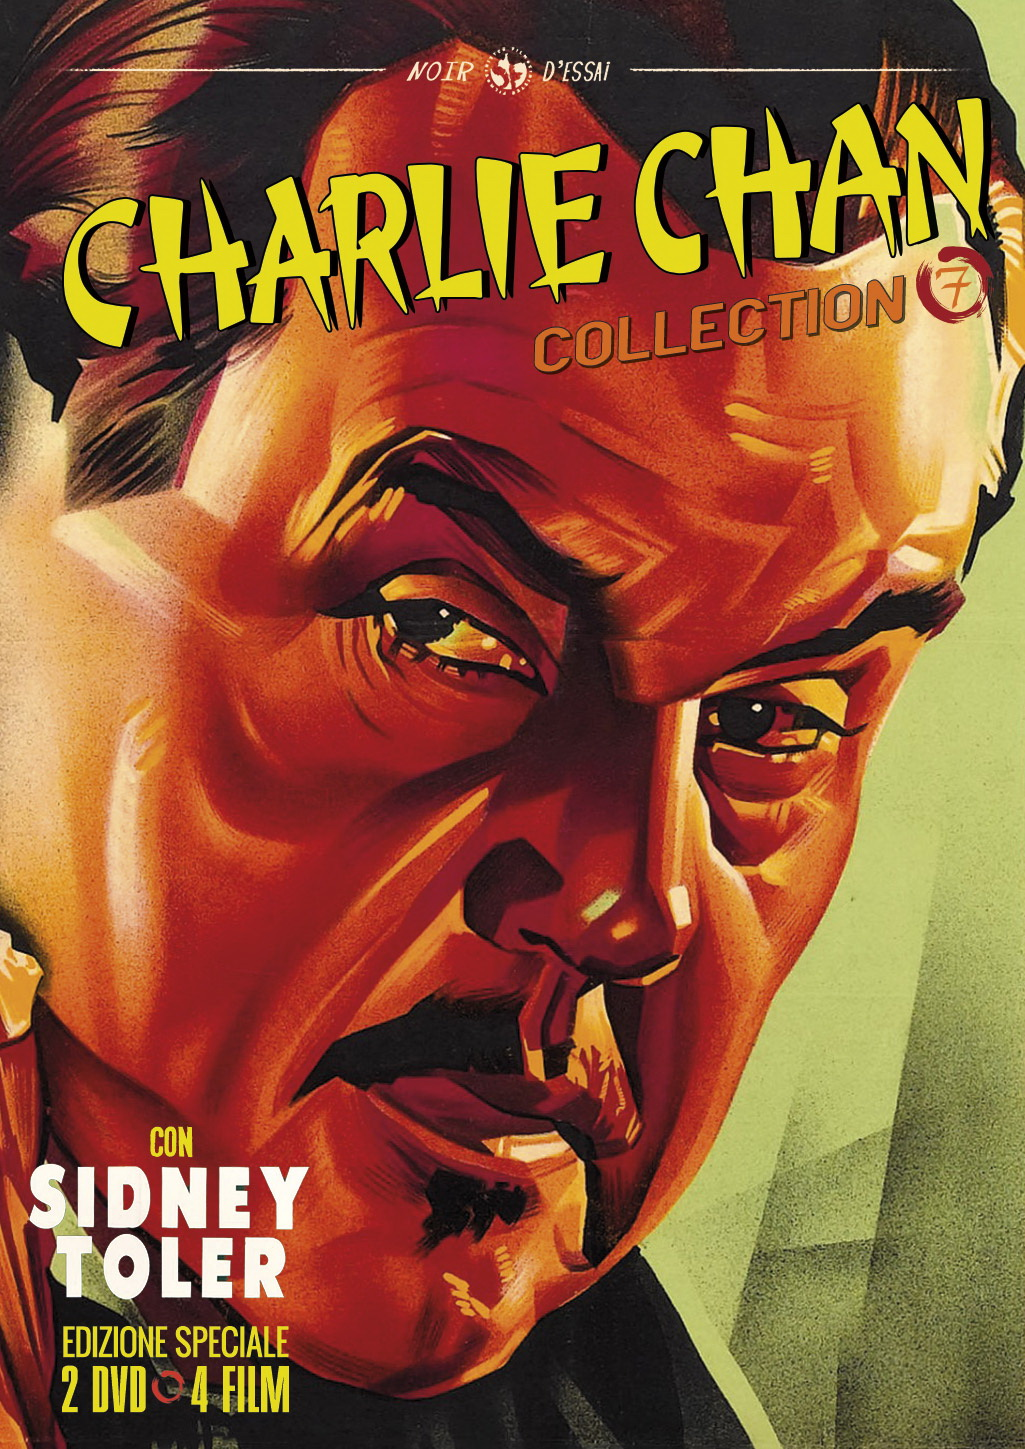 COF.CHARLIE CHAN COLLECTION #07 (2 DVD) (DVD)